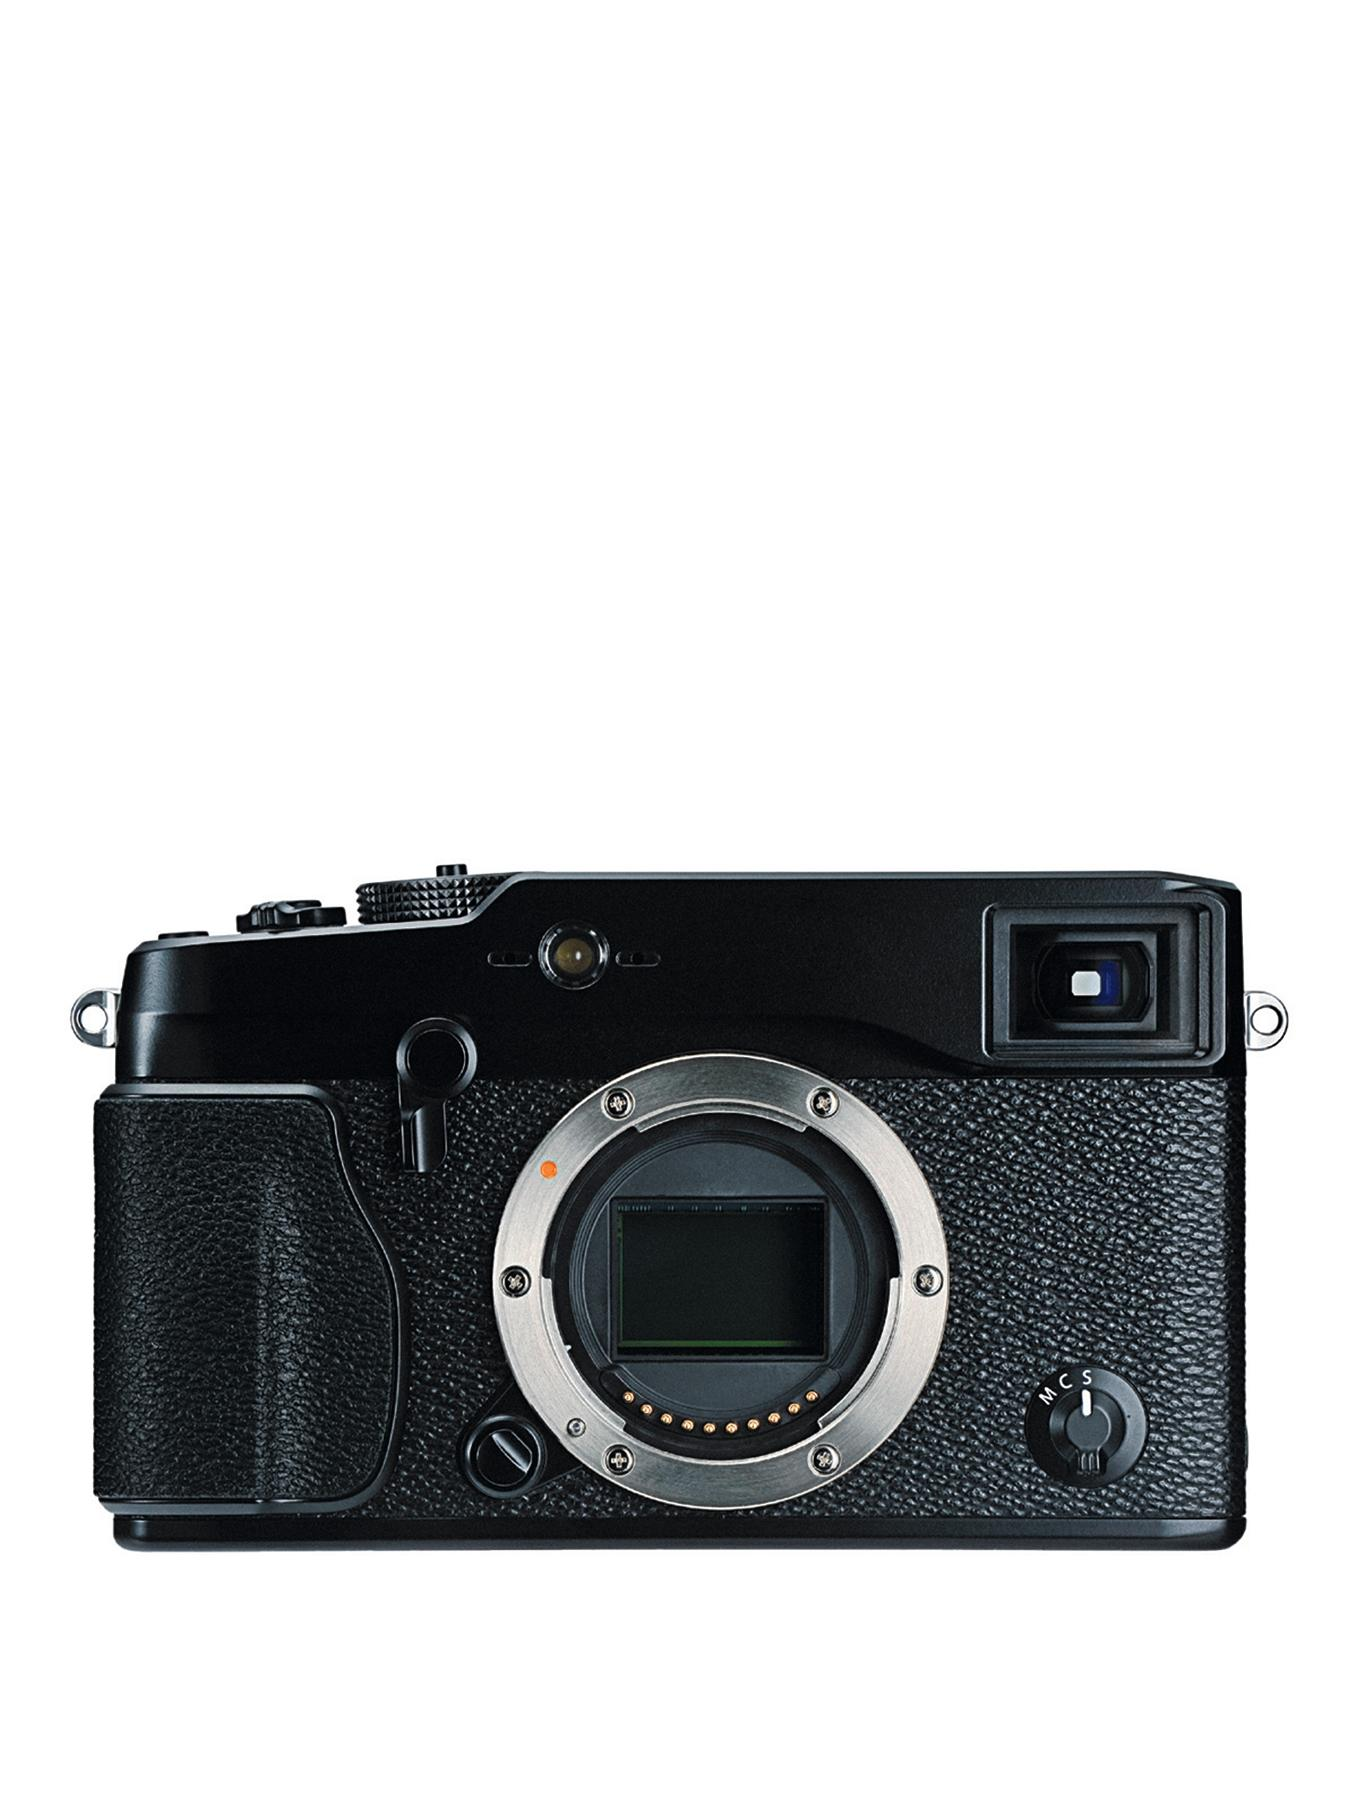 Fuji Fujifilm X-Pro1 Camera Body Only